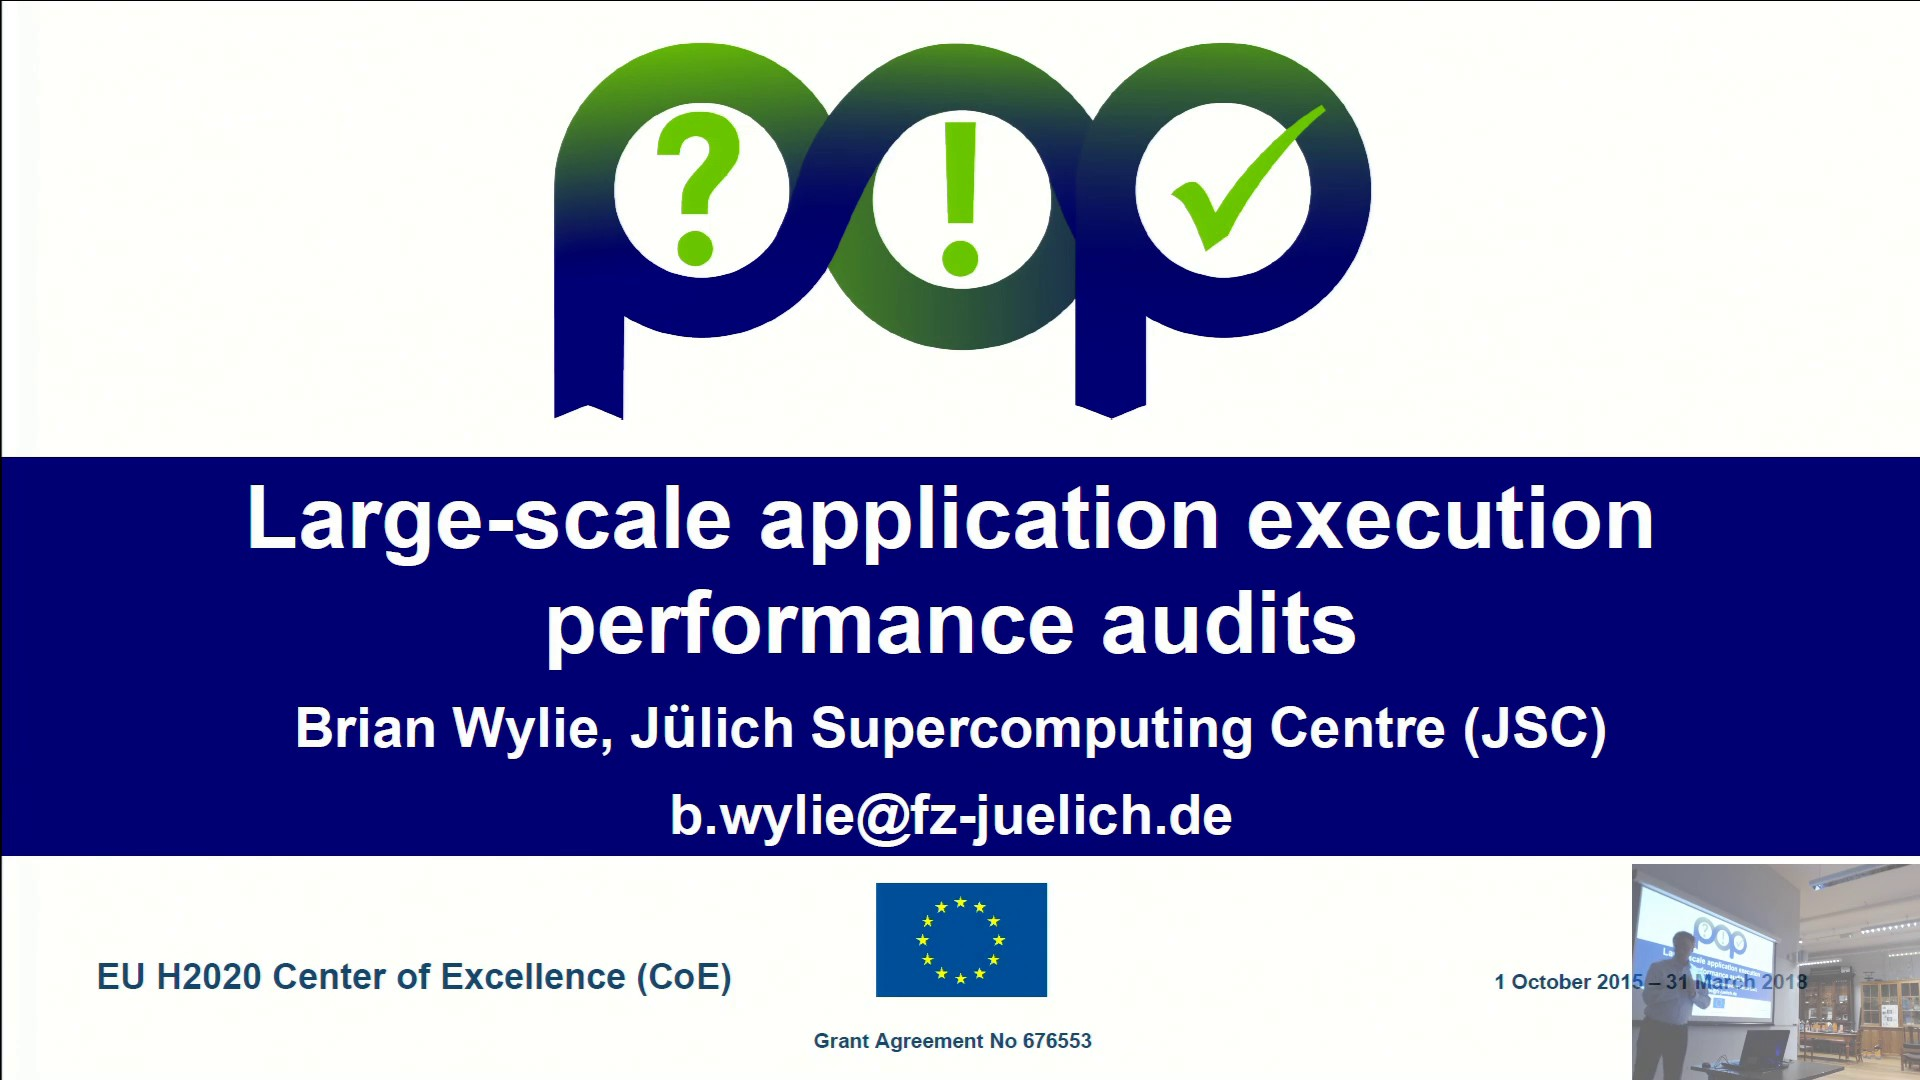 Thumbnail of Large-scale application execution Performance Audits